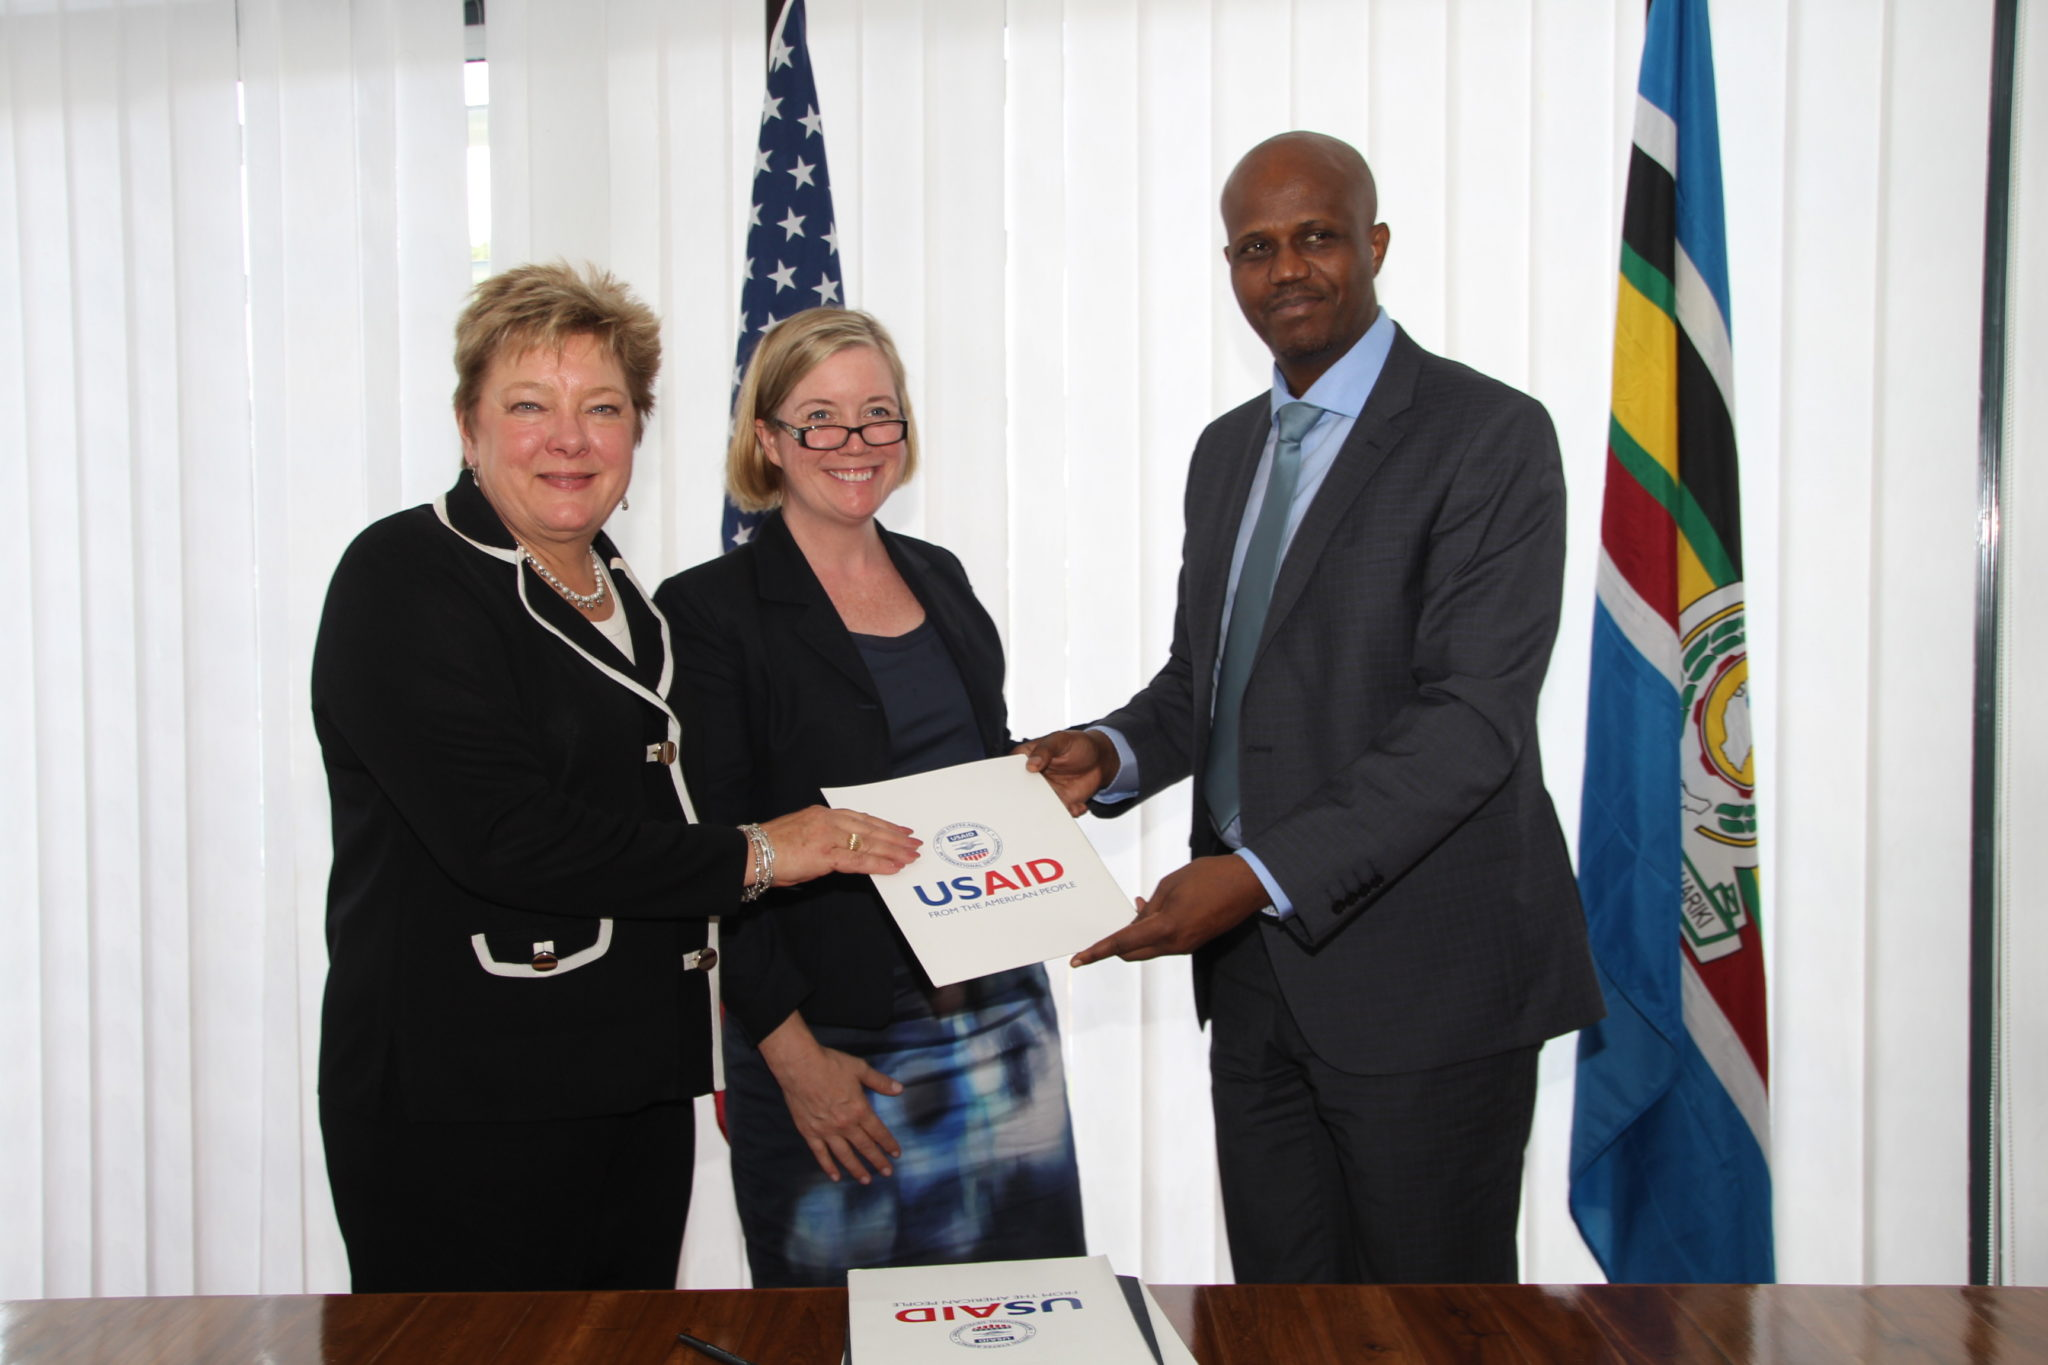 EAC Secretary General Amb. Liberat Mfumekeko exchanges signed copies of the five-year EAC-USAID Regional Development Objective Grant Agreement with Ms. Karen Freeman (USAID East Africa and the Chargé d'Affaires of the US Embassy in Tanzania, Ms. Virginia Blaser (centre).